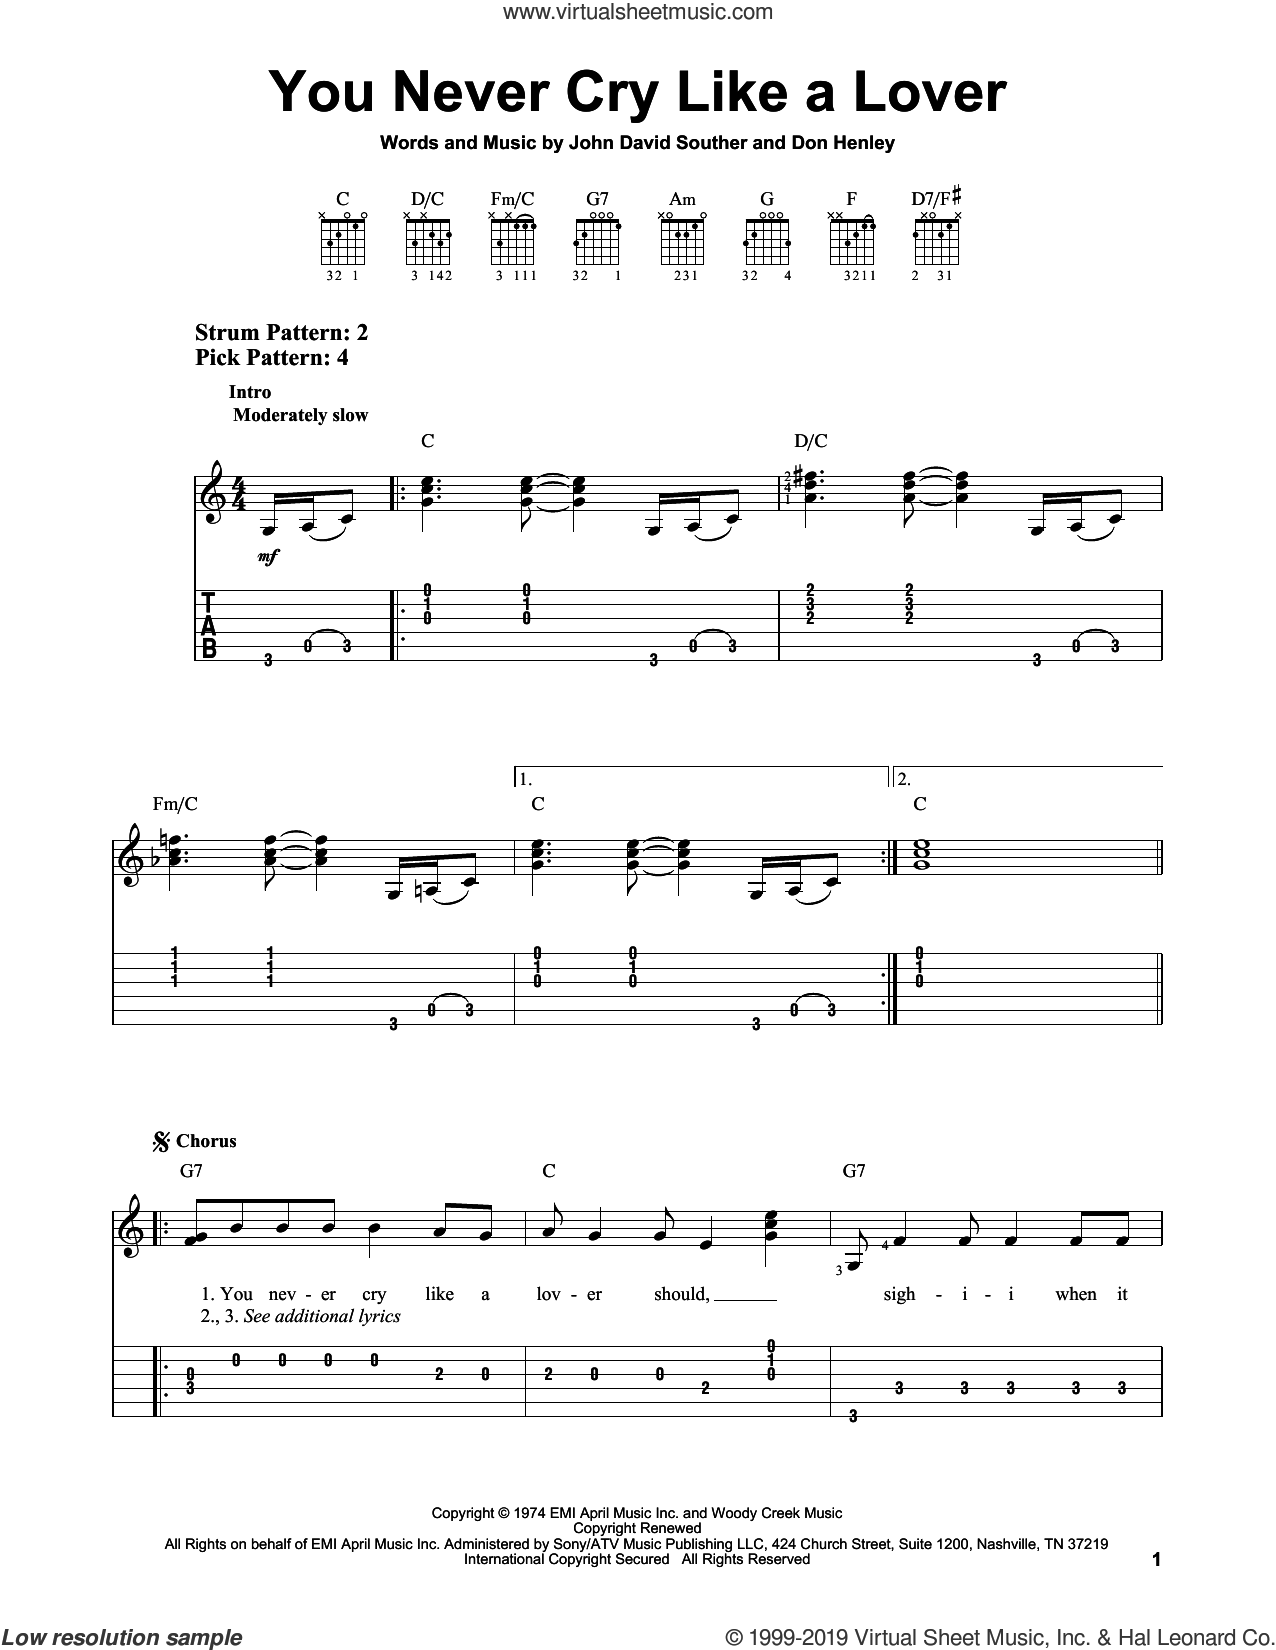 You Never Cry Like A Lover sheet music for guitar solo (easy tablature) by The Eagles, Don Henley and John David Souther, easy guitar (easy tablature)